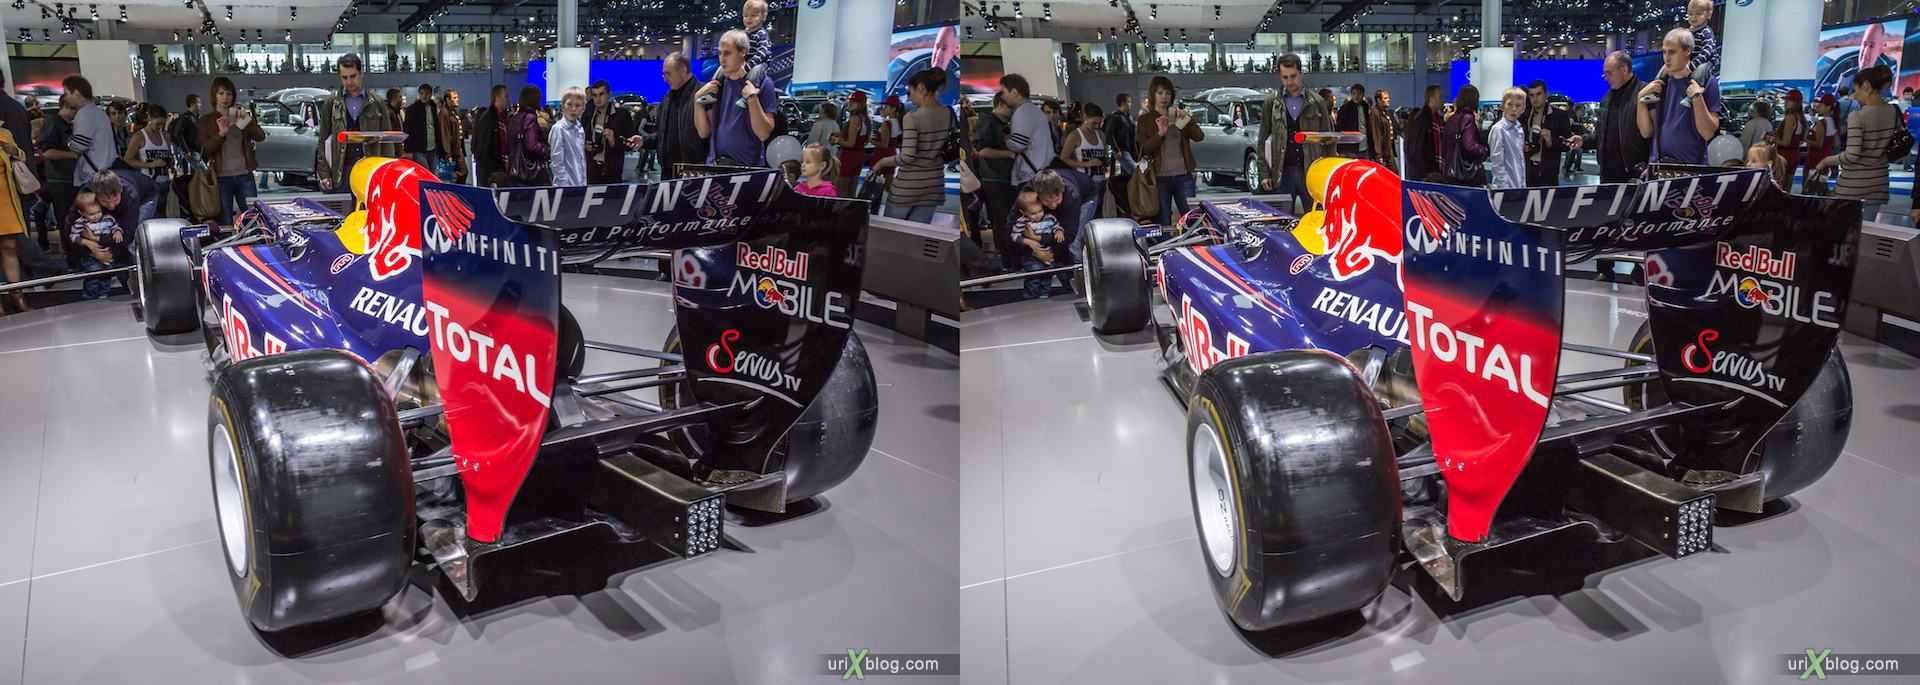 2012, Renault Furmula 1 F1, Moscow International Automobile Salon, auto show, 3D, stereo pair, cross-eyed, crossview